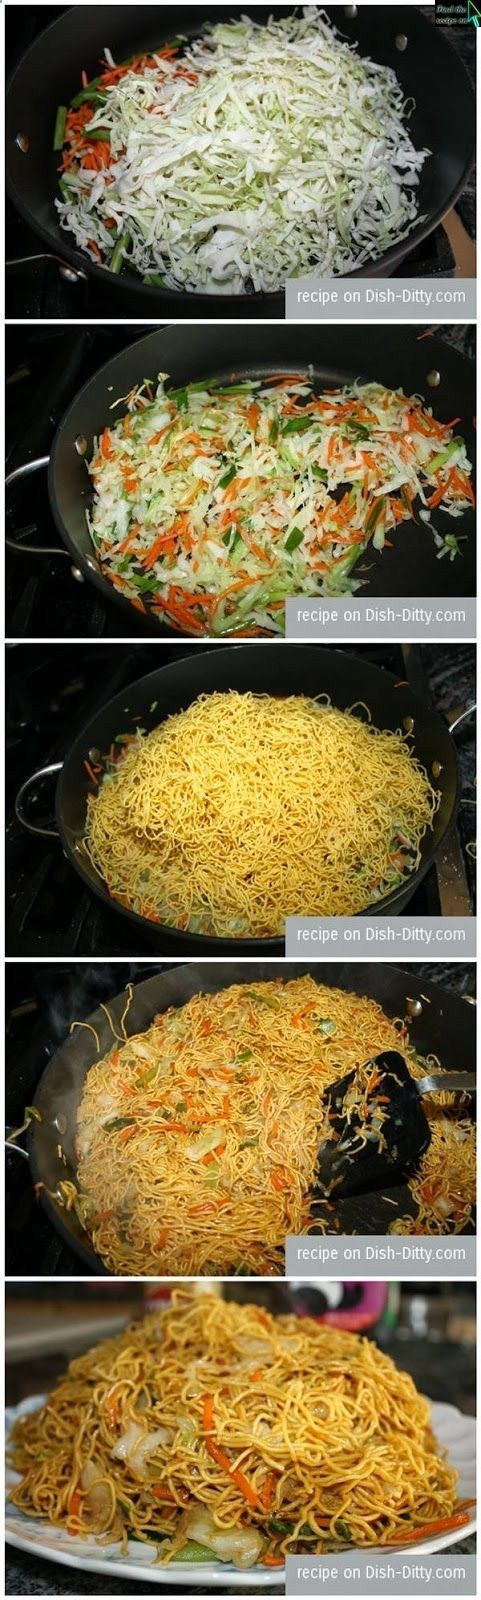 Vegetable Chow Mein Recipe | Chef recipes magazineChef recipes magazine